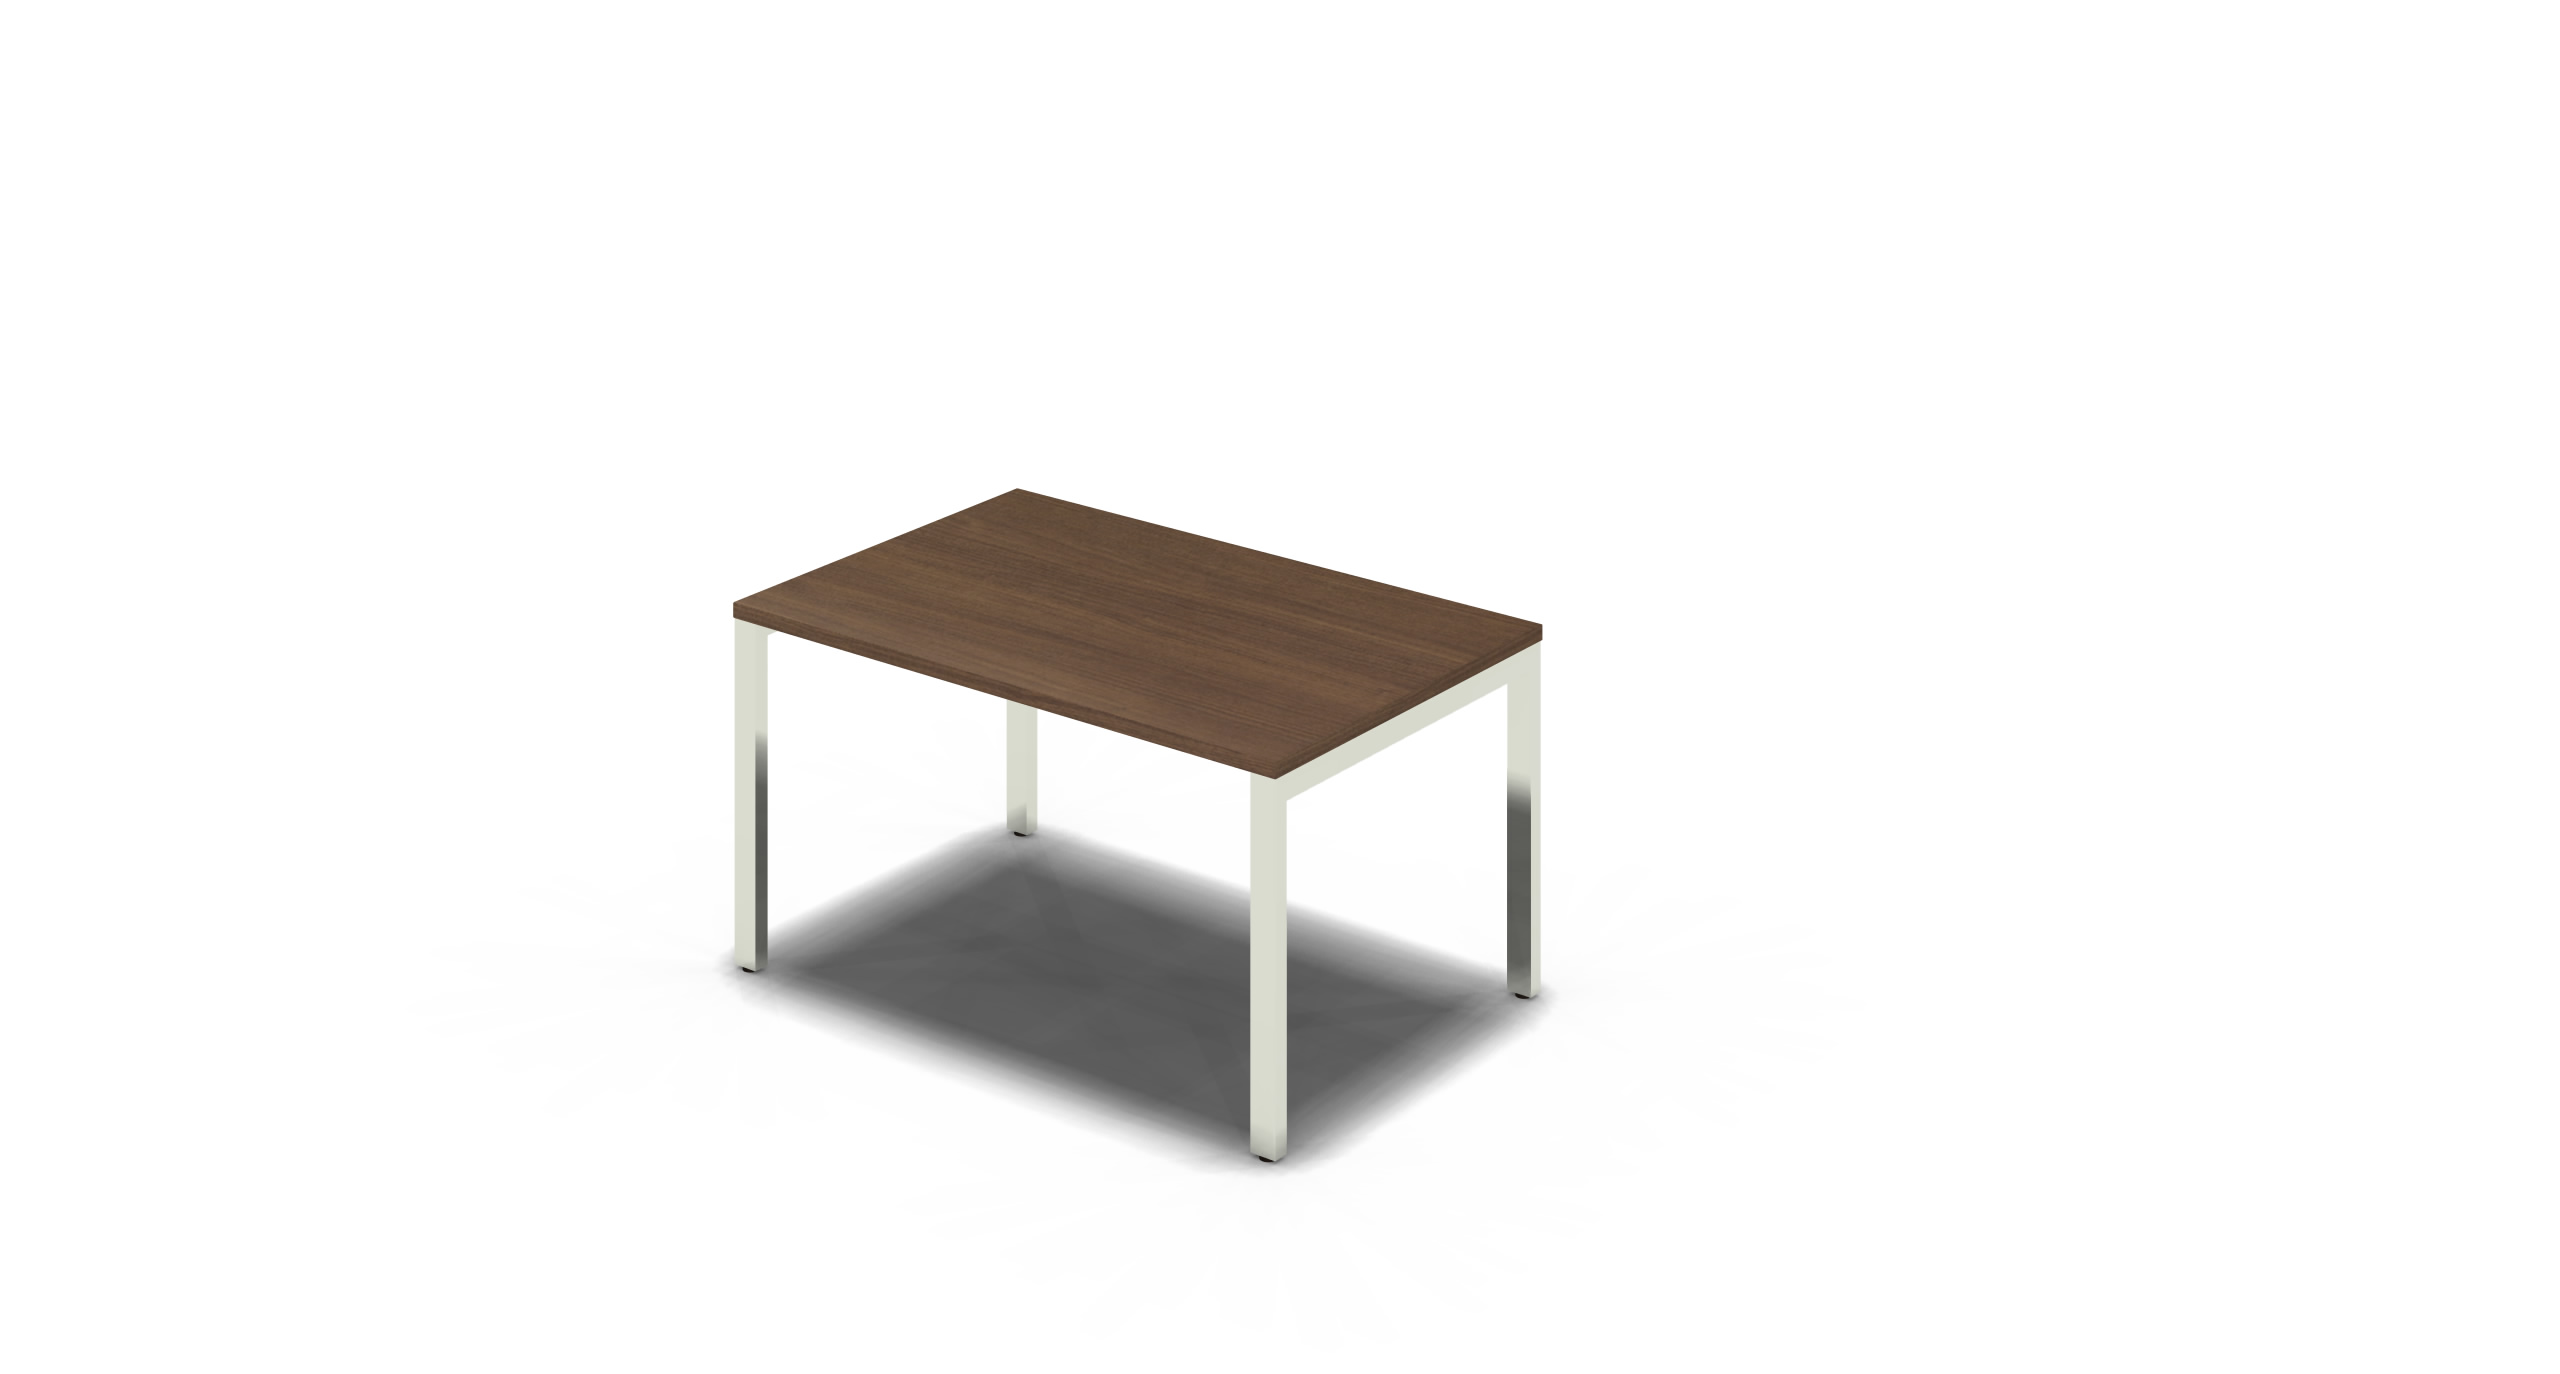 Table_Square_1200x750_Chrome_Walnut_noOption